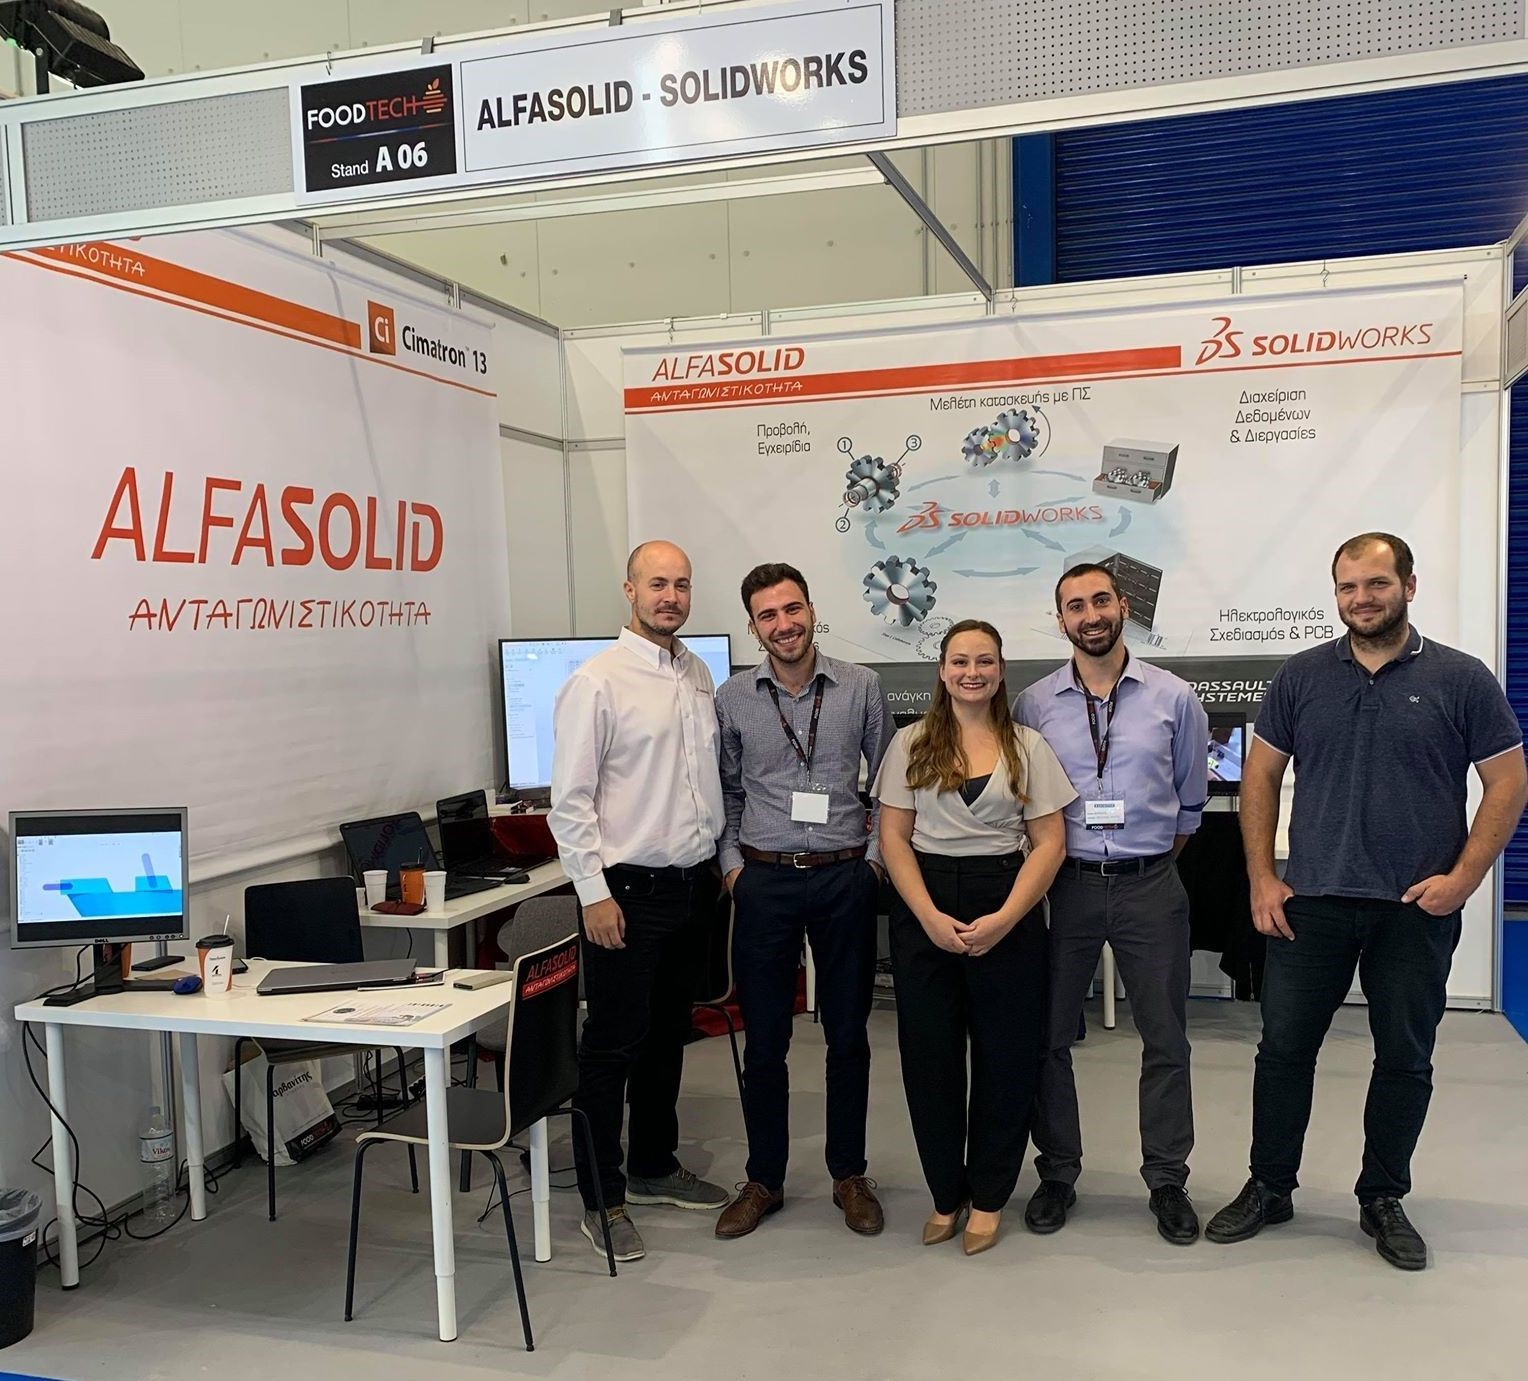 AlfaSolid at FOODTECH 2019